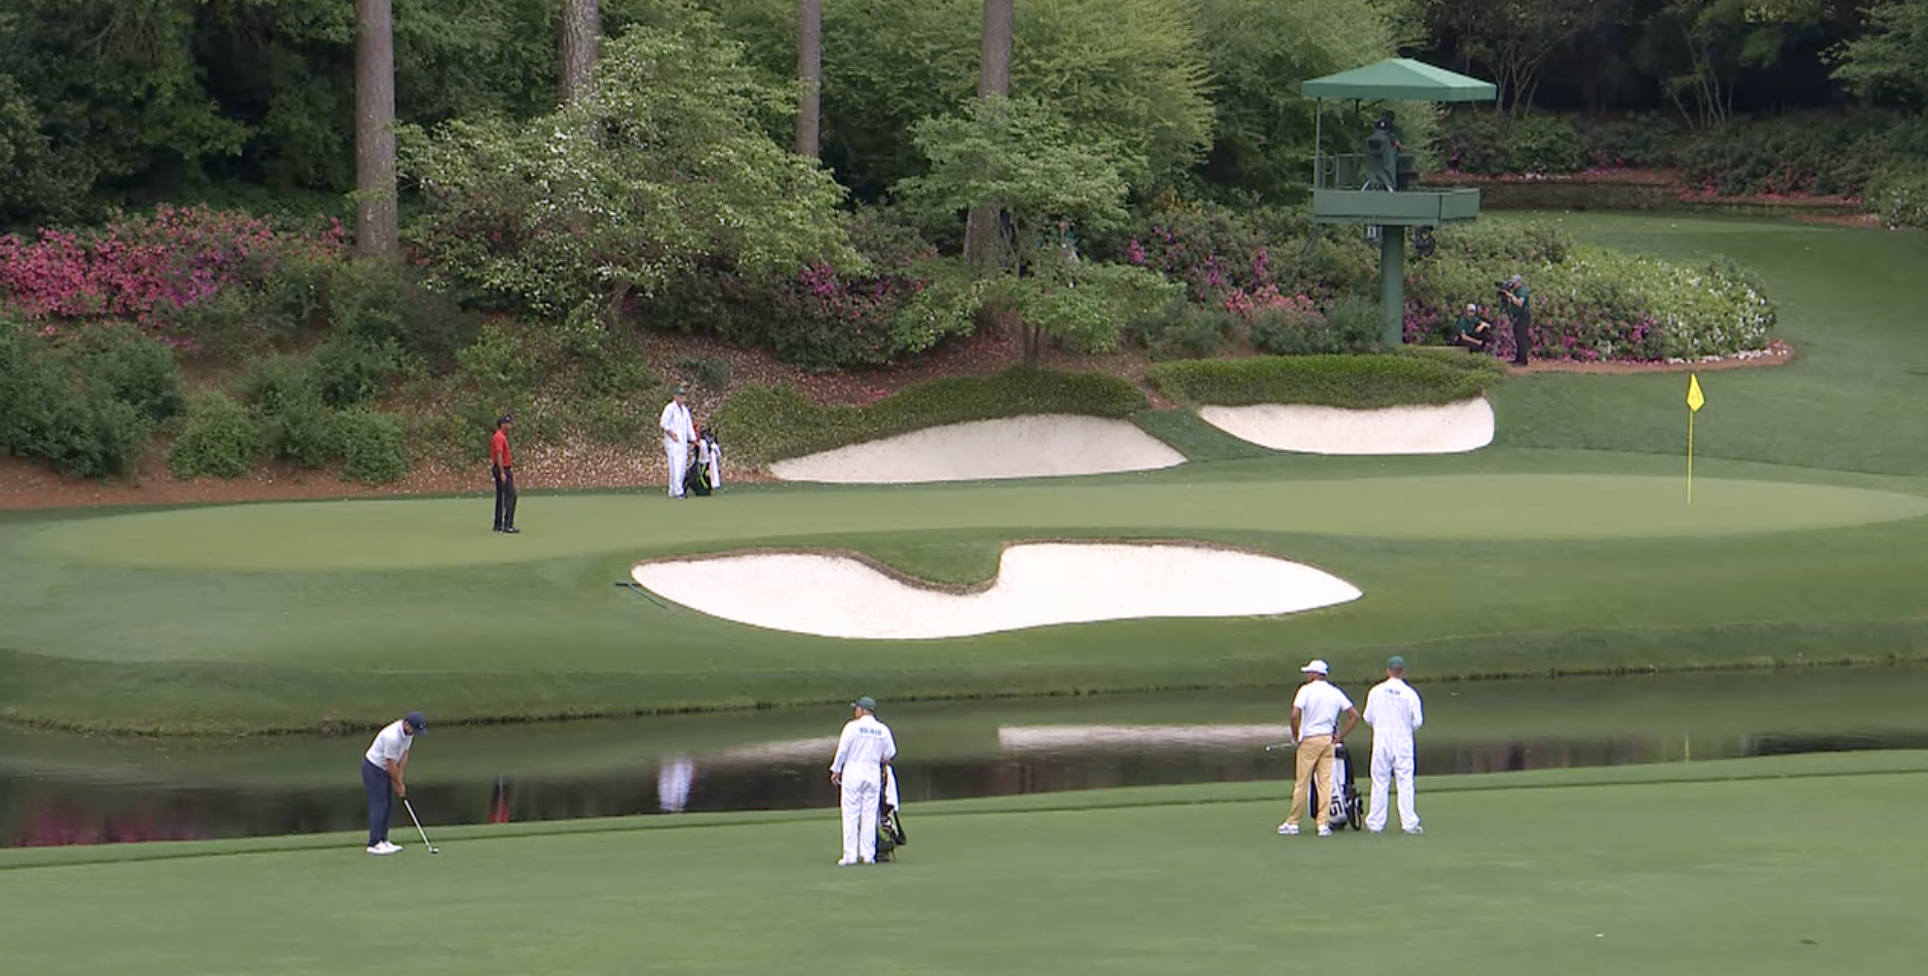 Screen capture from Masters.com's leaderboard clips.